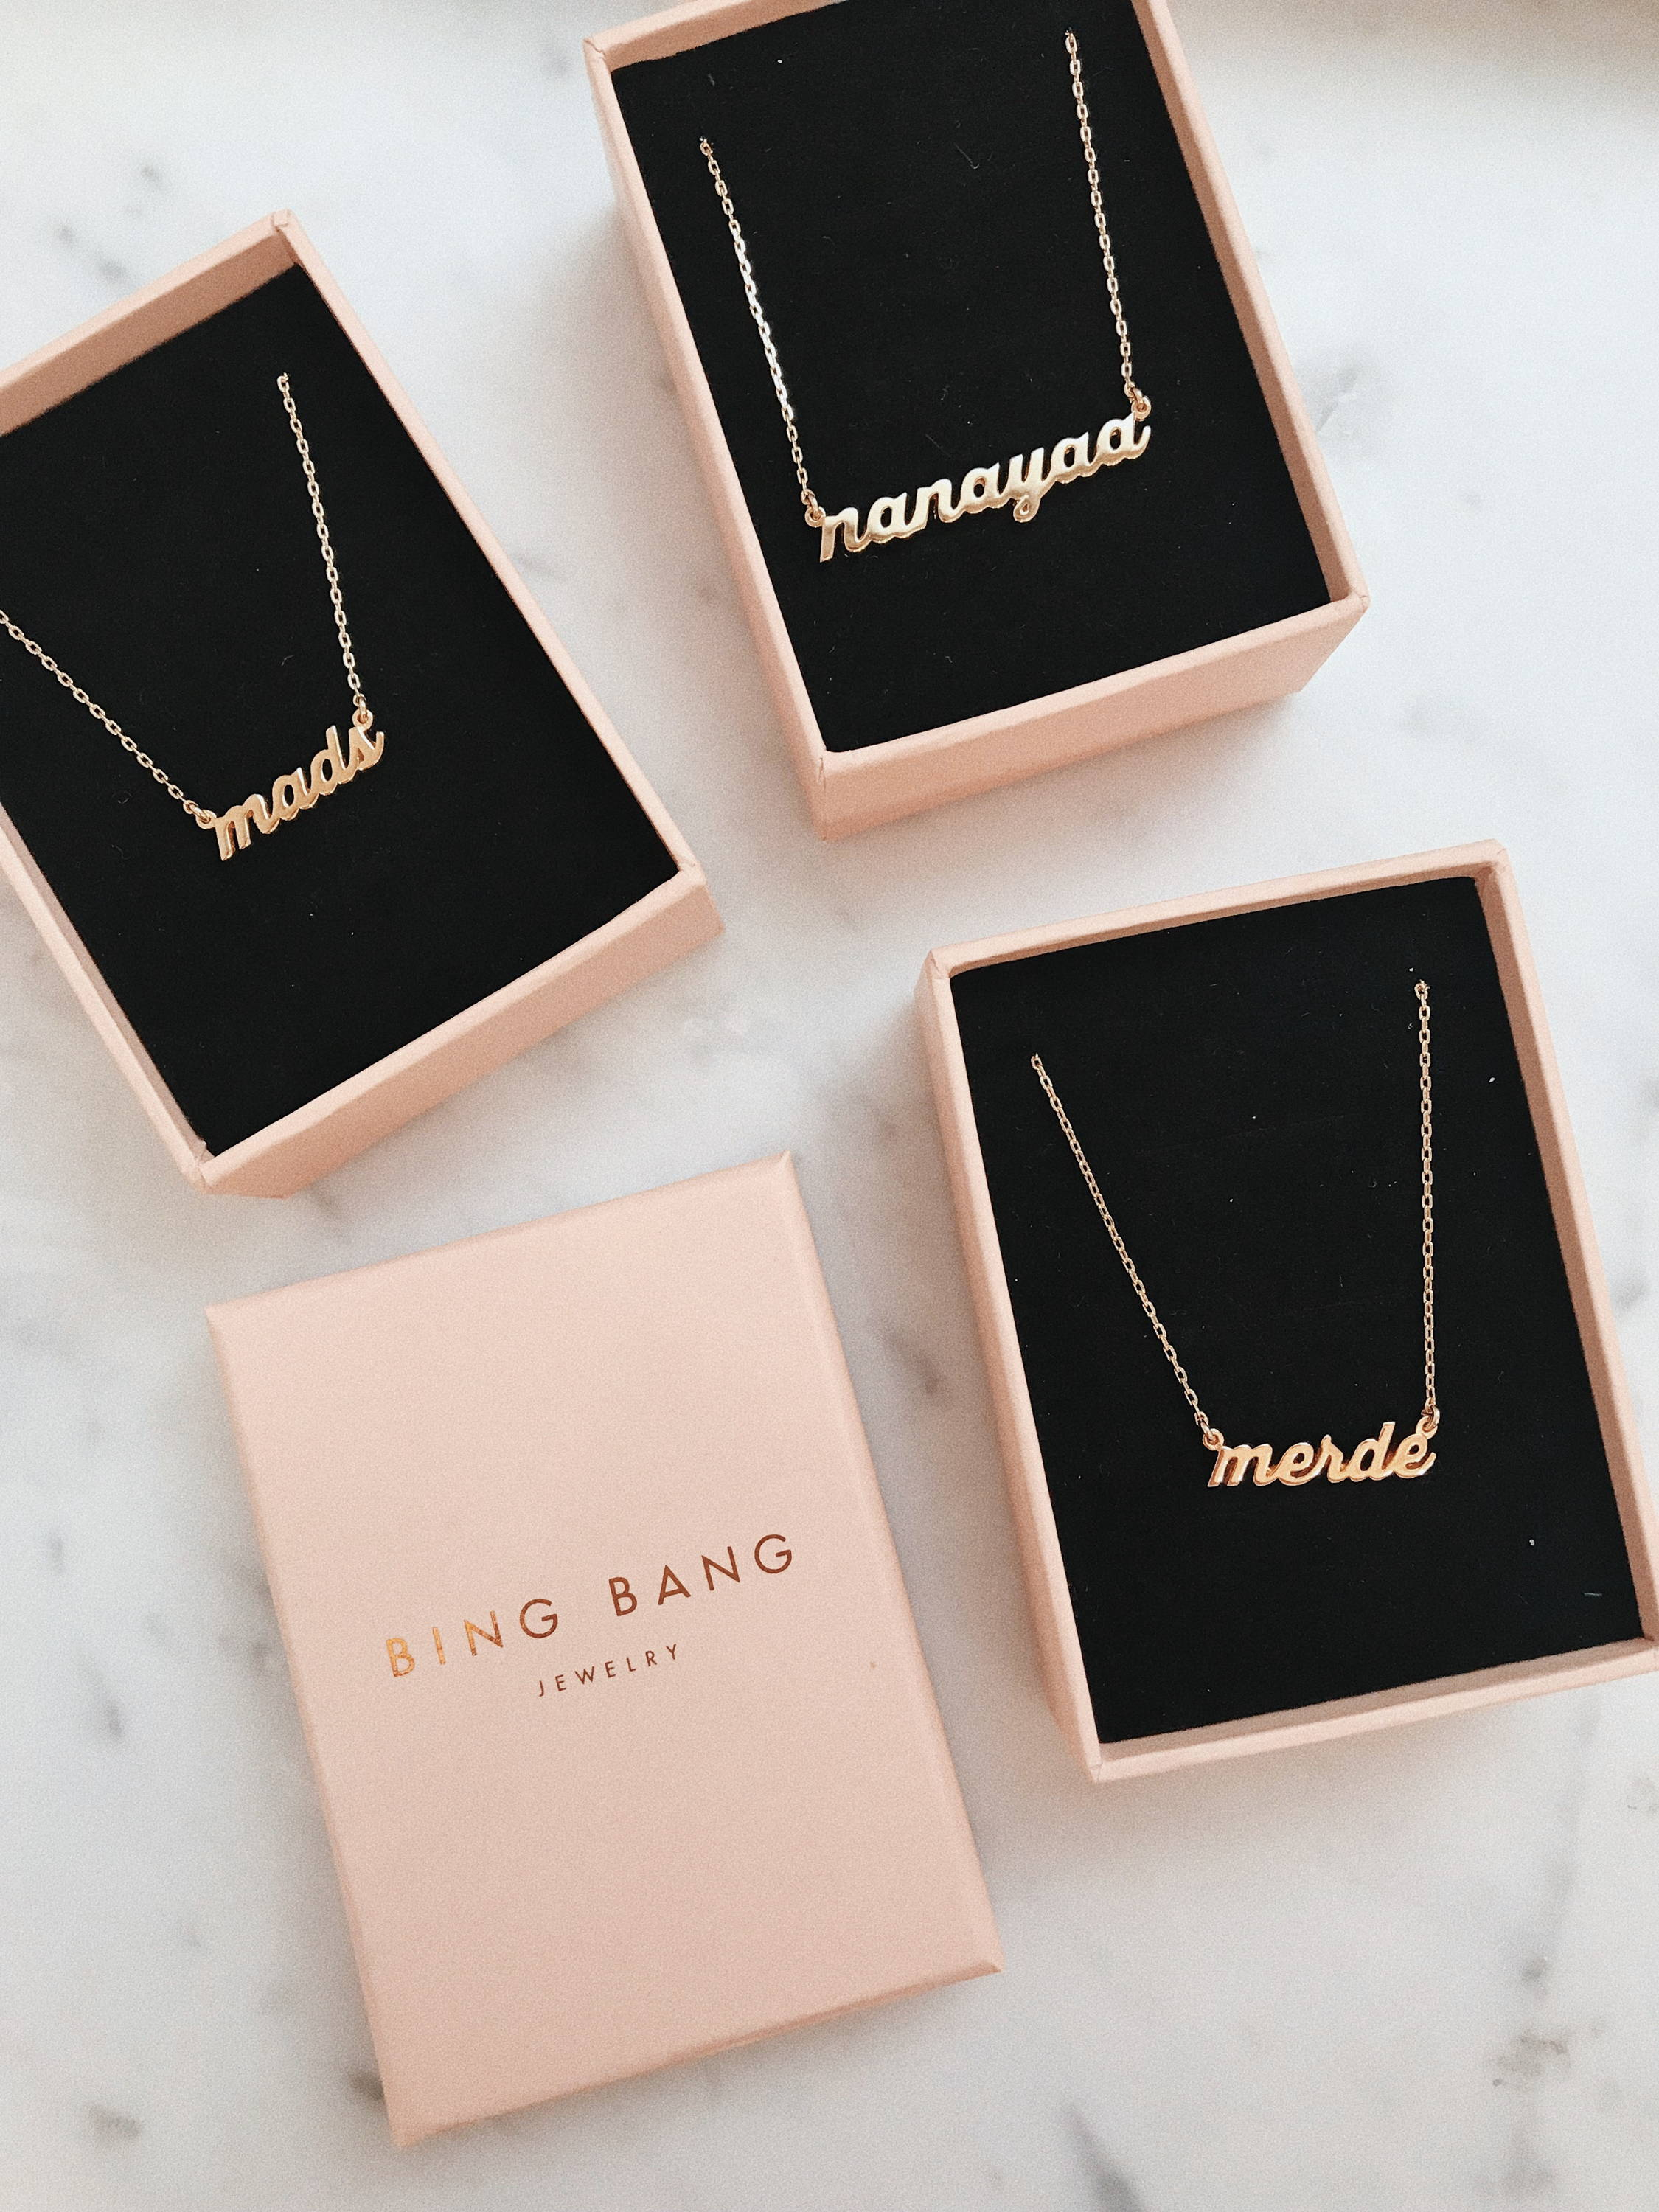 Custom Nameplate Necklace - Bing Bang by Anna Sheffield